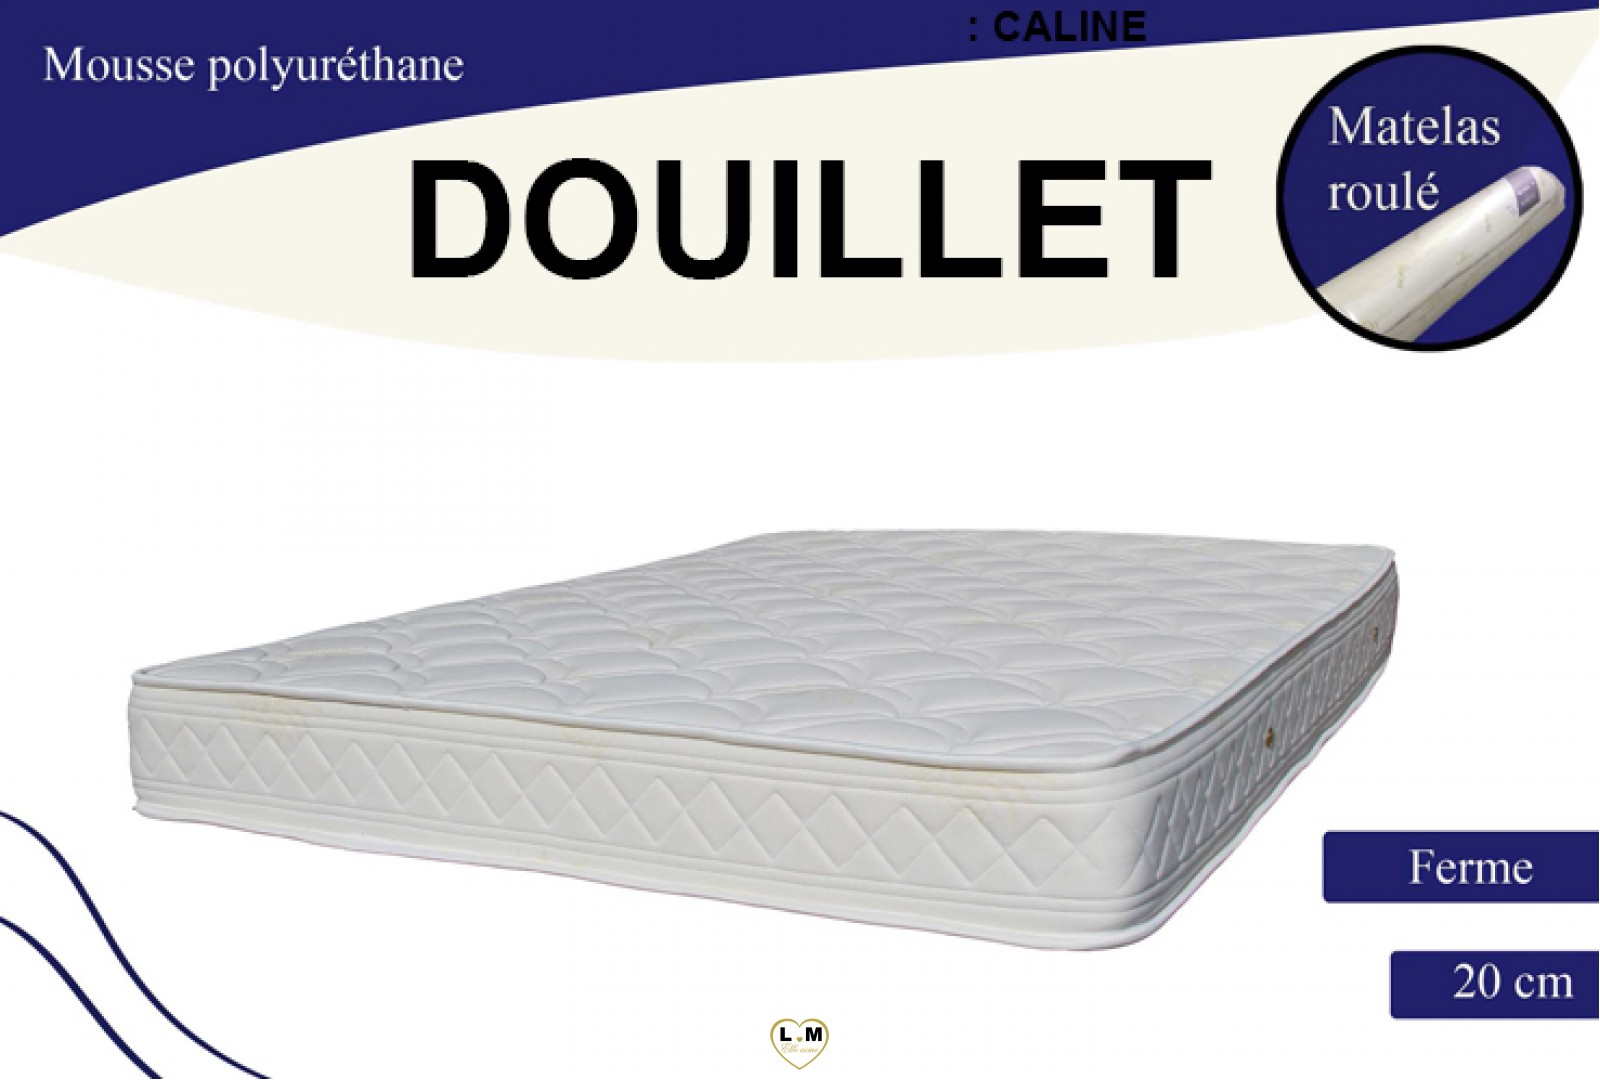 douillet matelas mousse le matelas 140x190 cm lignemeuble com. Black Bedroom Furniture Sets. Home Design Ideas